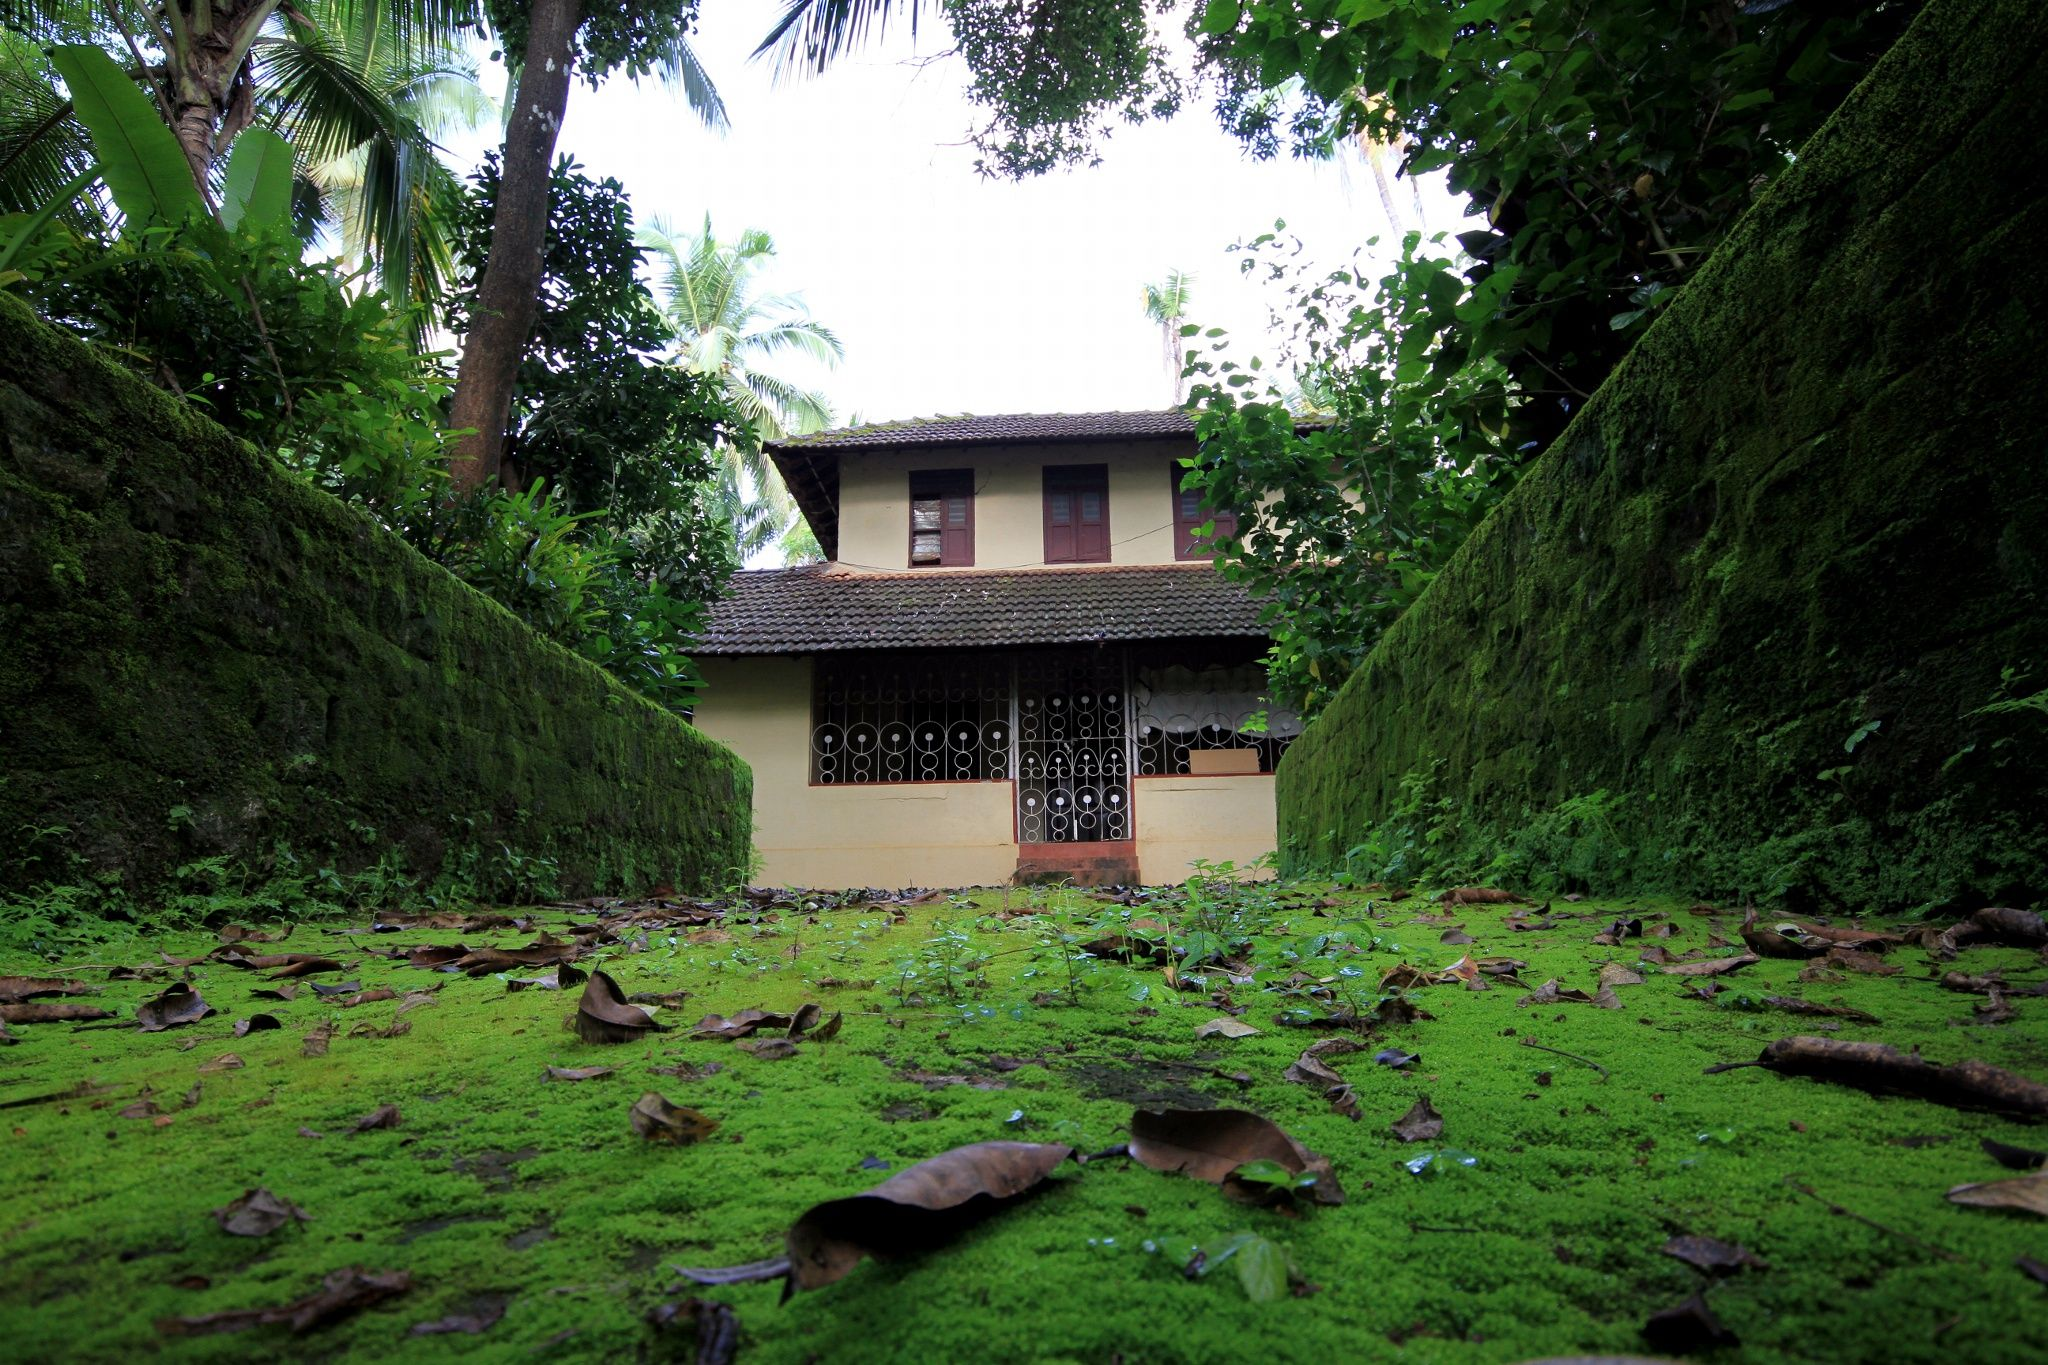 Padippura design images shape kerala home - Kerala House By Rajesh R Nair On 500px